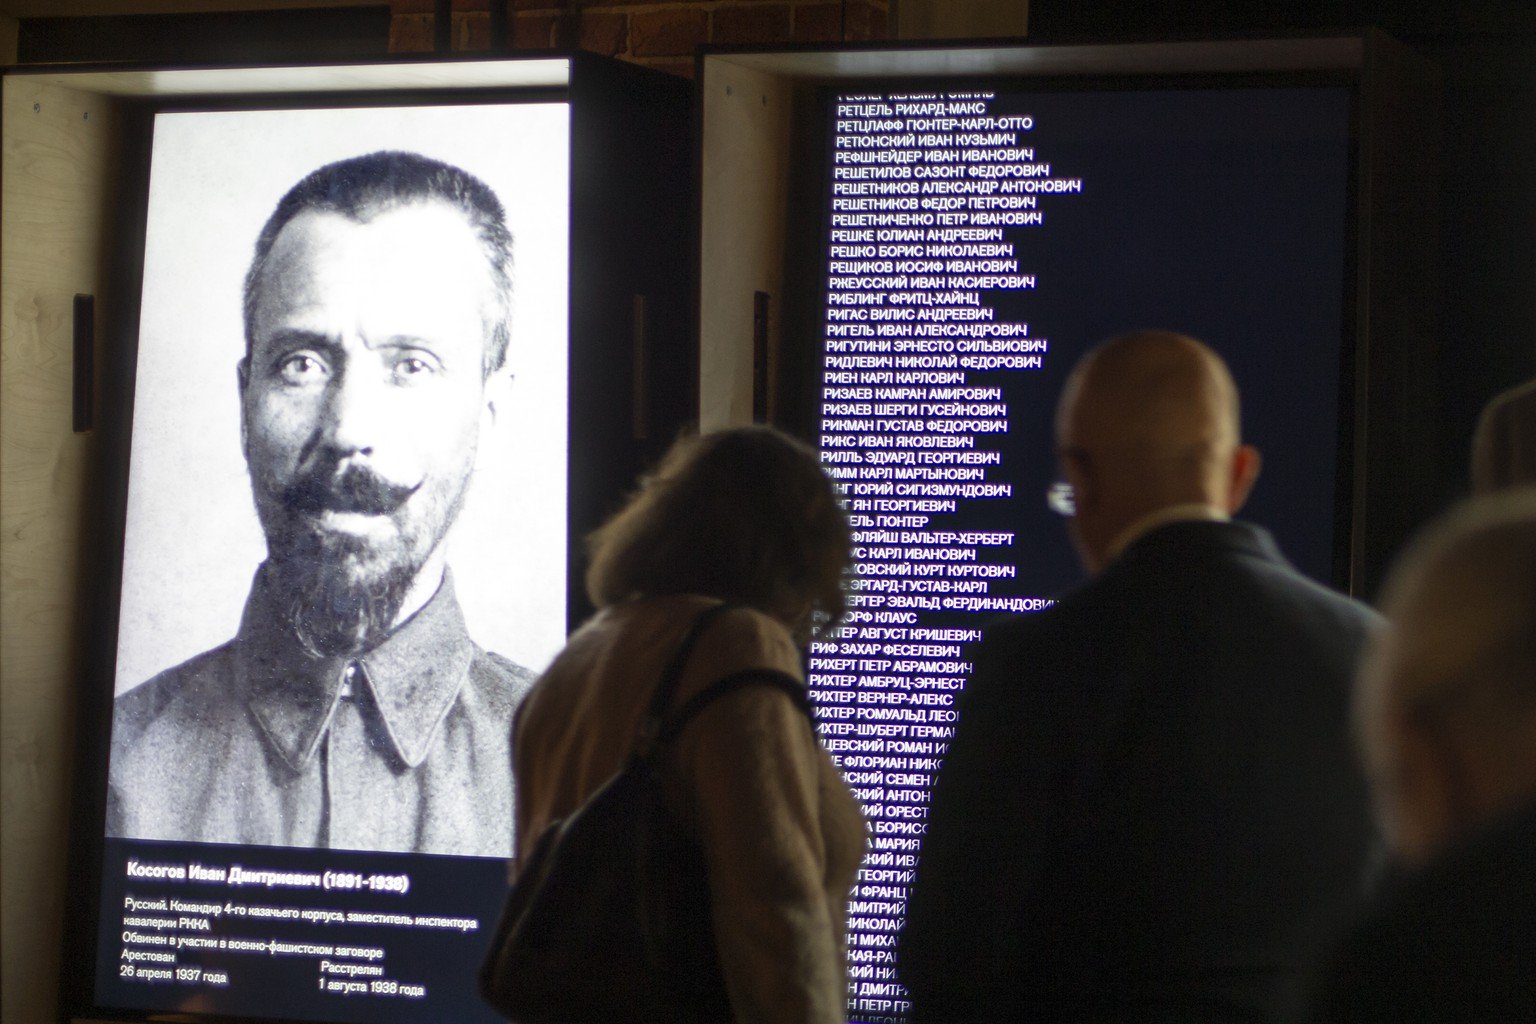 FILE  - In this Friday, Oct. 30, 2015 file photo, visitors look at an exposition at the opening of the Gulag history museum in Moscow, Russia. A museum studying the history of Soviet prison camps said Friday, June 8, 2018 that it has discovered a recent, secret Russian order instructing officials to destroy data on prisoners. Up to 17 million people were sent to the Gulag, the notorious Soviet prison camp system, in the 1930s and 1940s, and at least 5 million of them were convicted on false testimony. The prison population in the sprawling labor camps peaked at 2 million people. (AP Photo/Alexander Zemlianichenko, File)